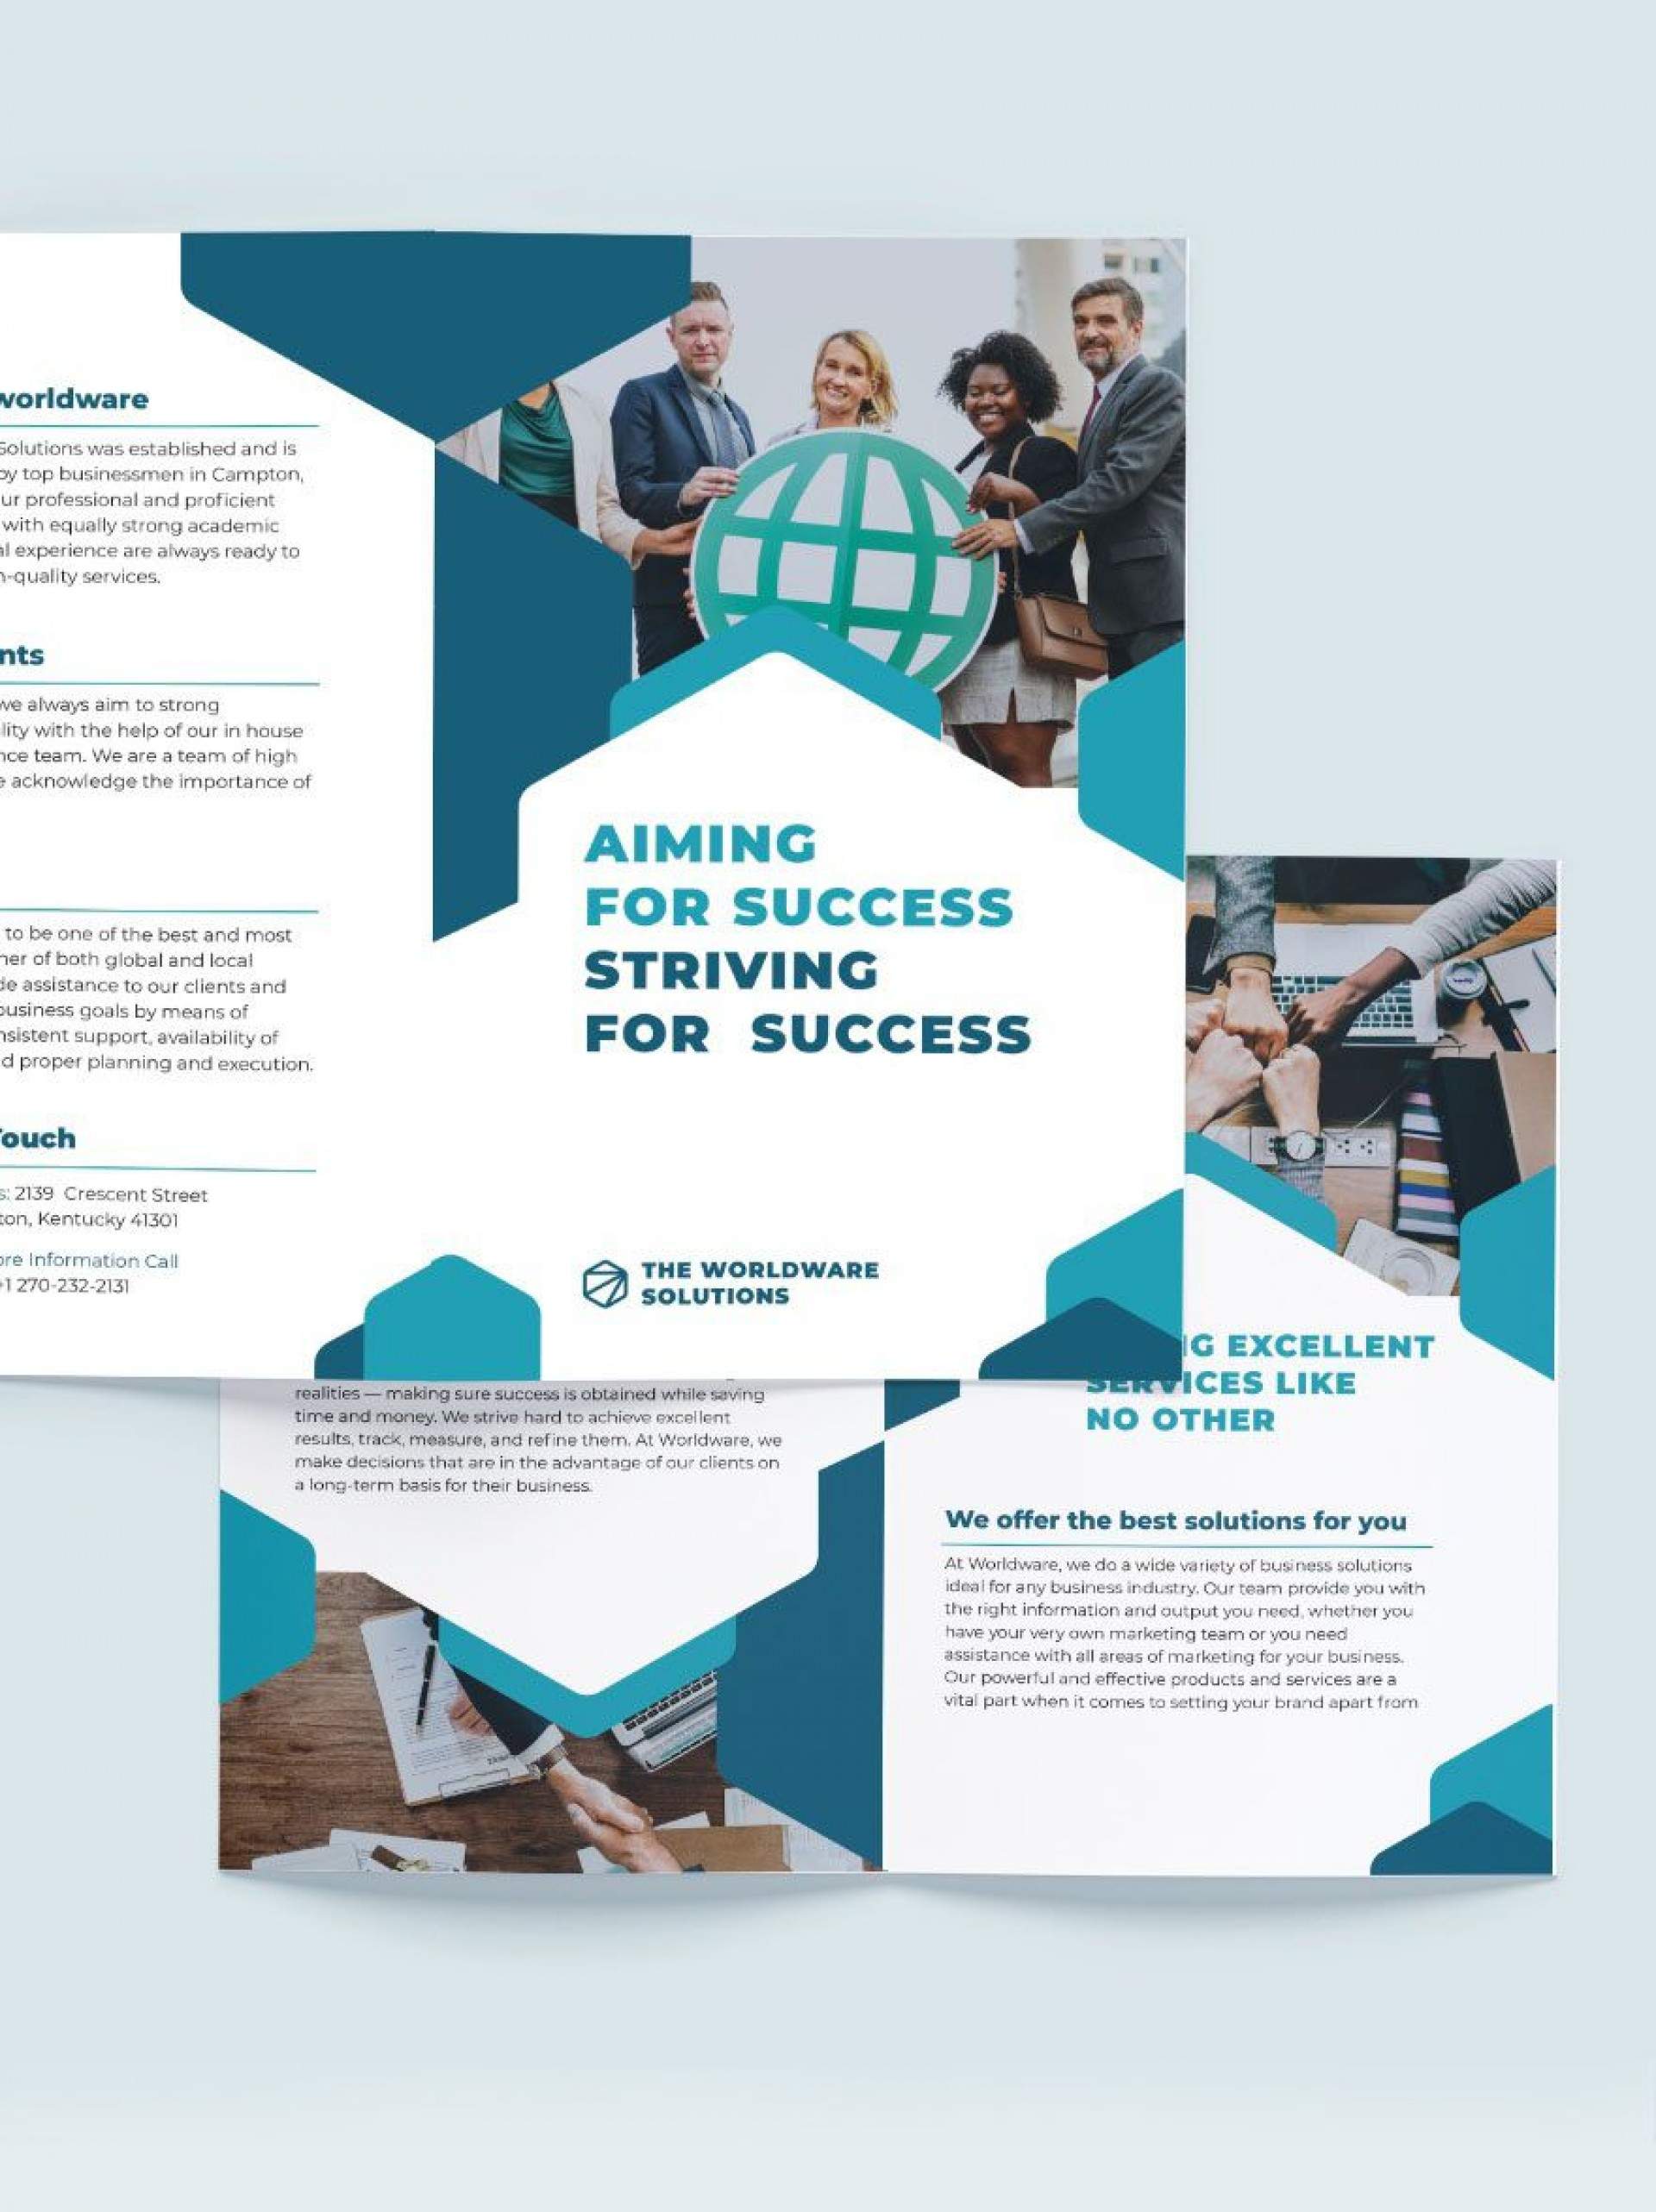 004 Outstanding Adobe Photoshop Brochure Template Free Download High Resolution 1920